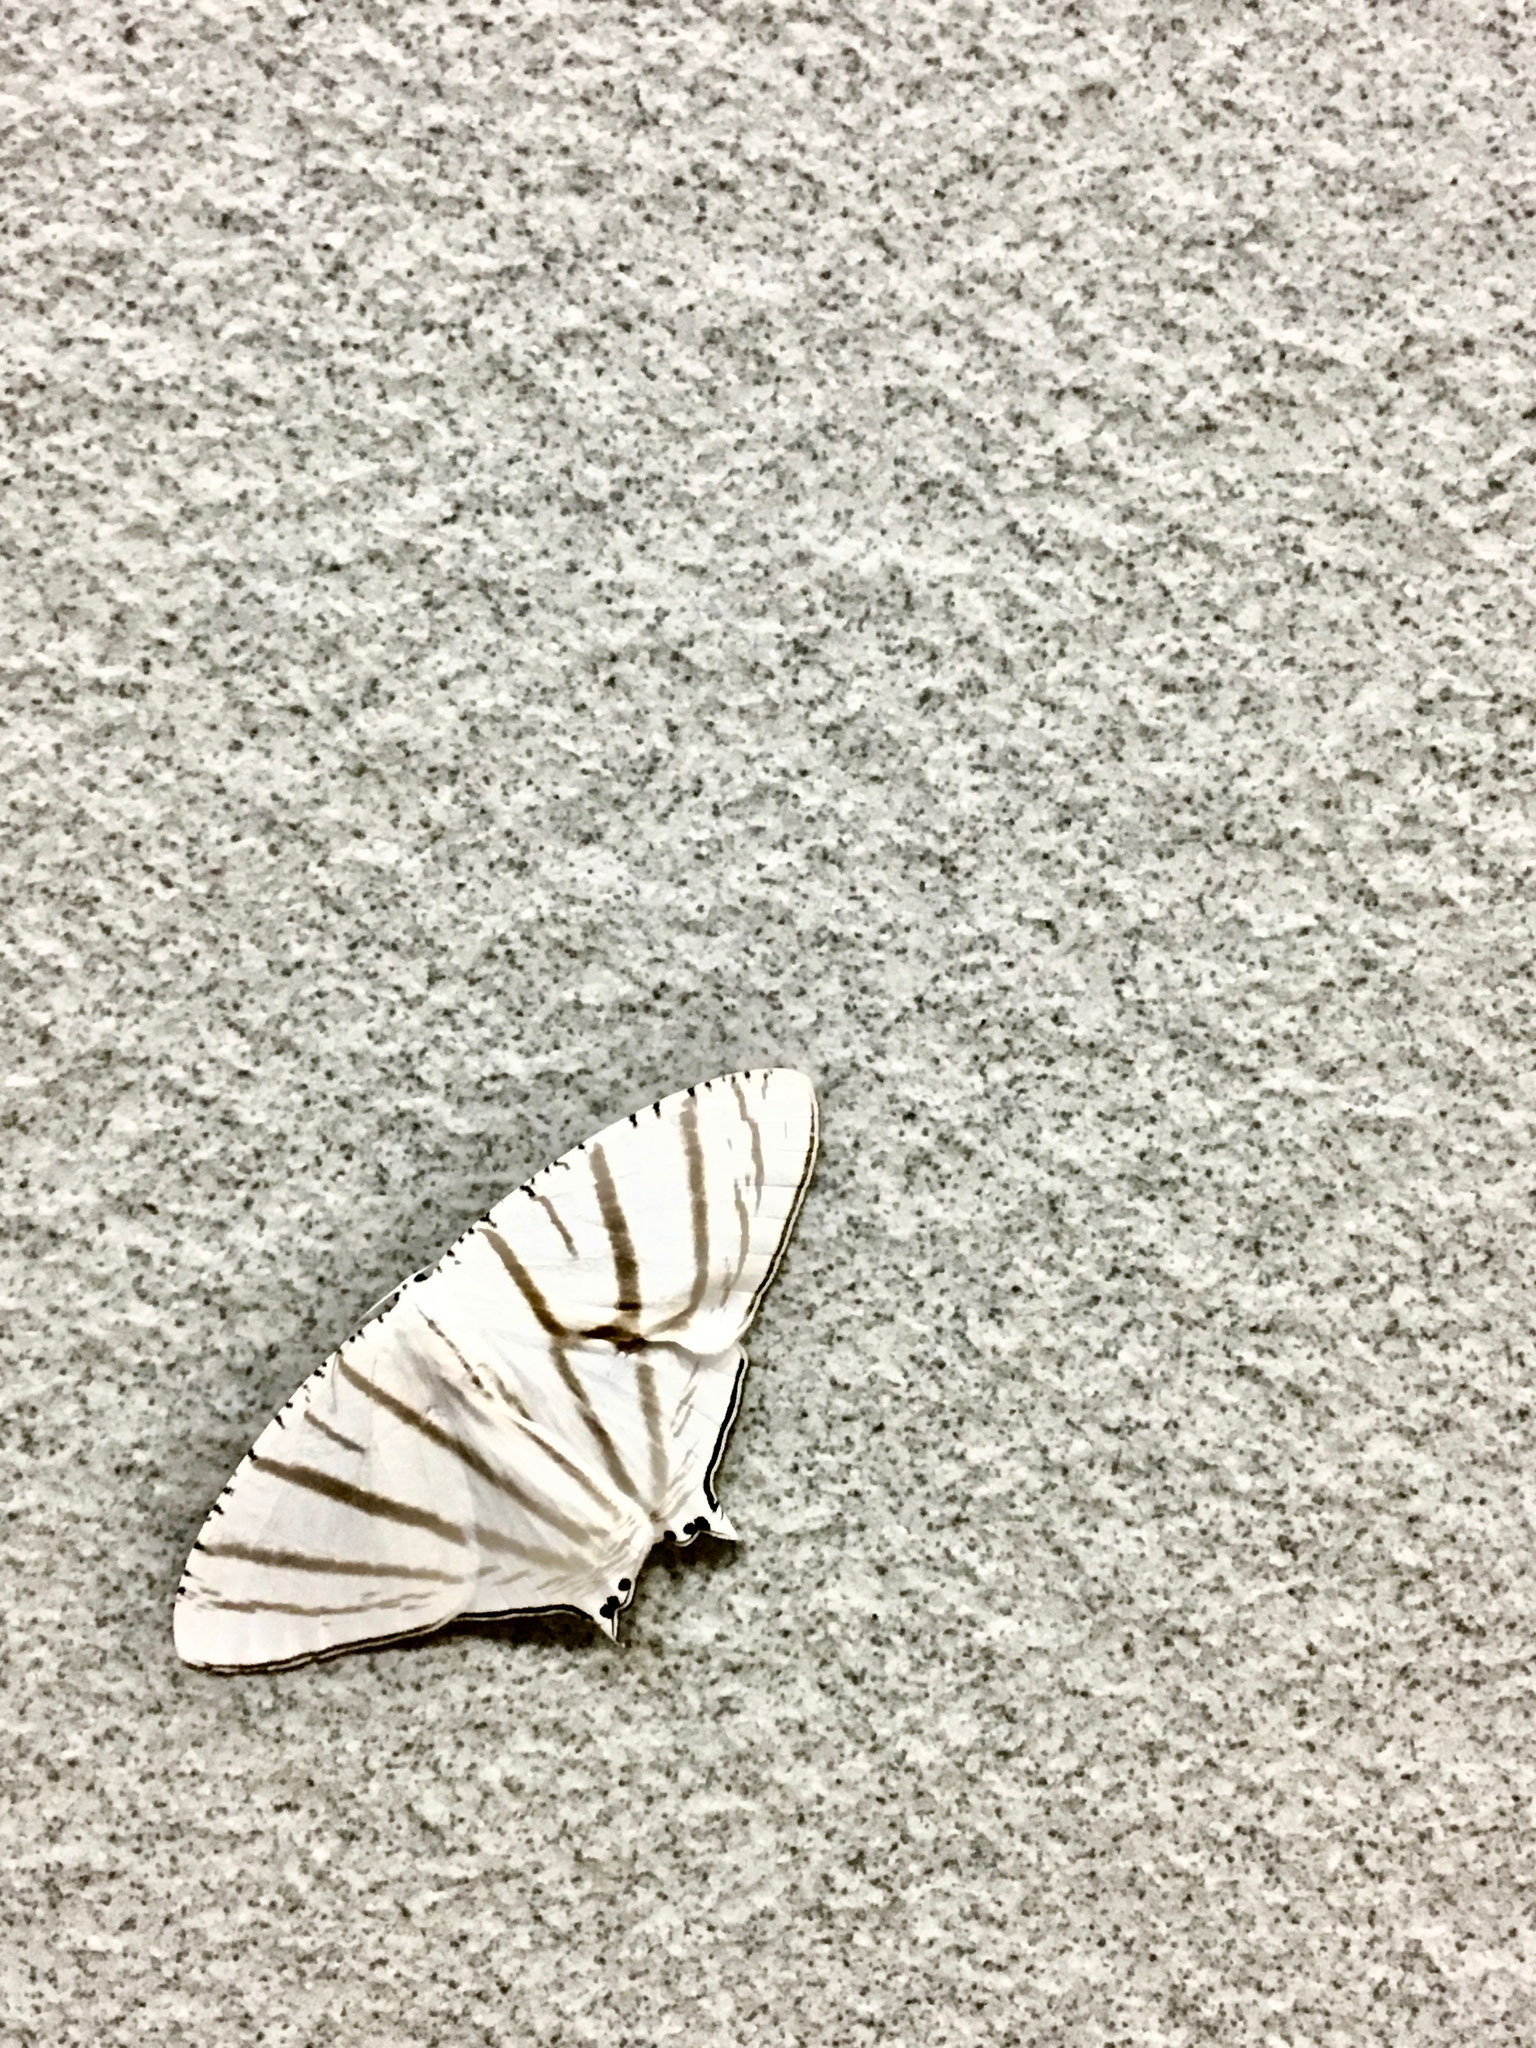 Moth. Photo credits to Krystle